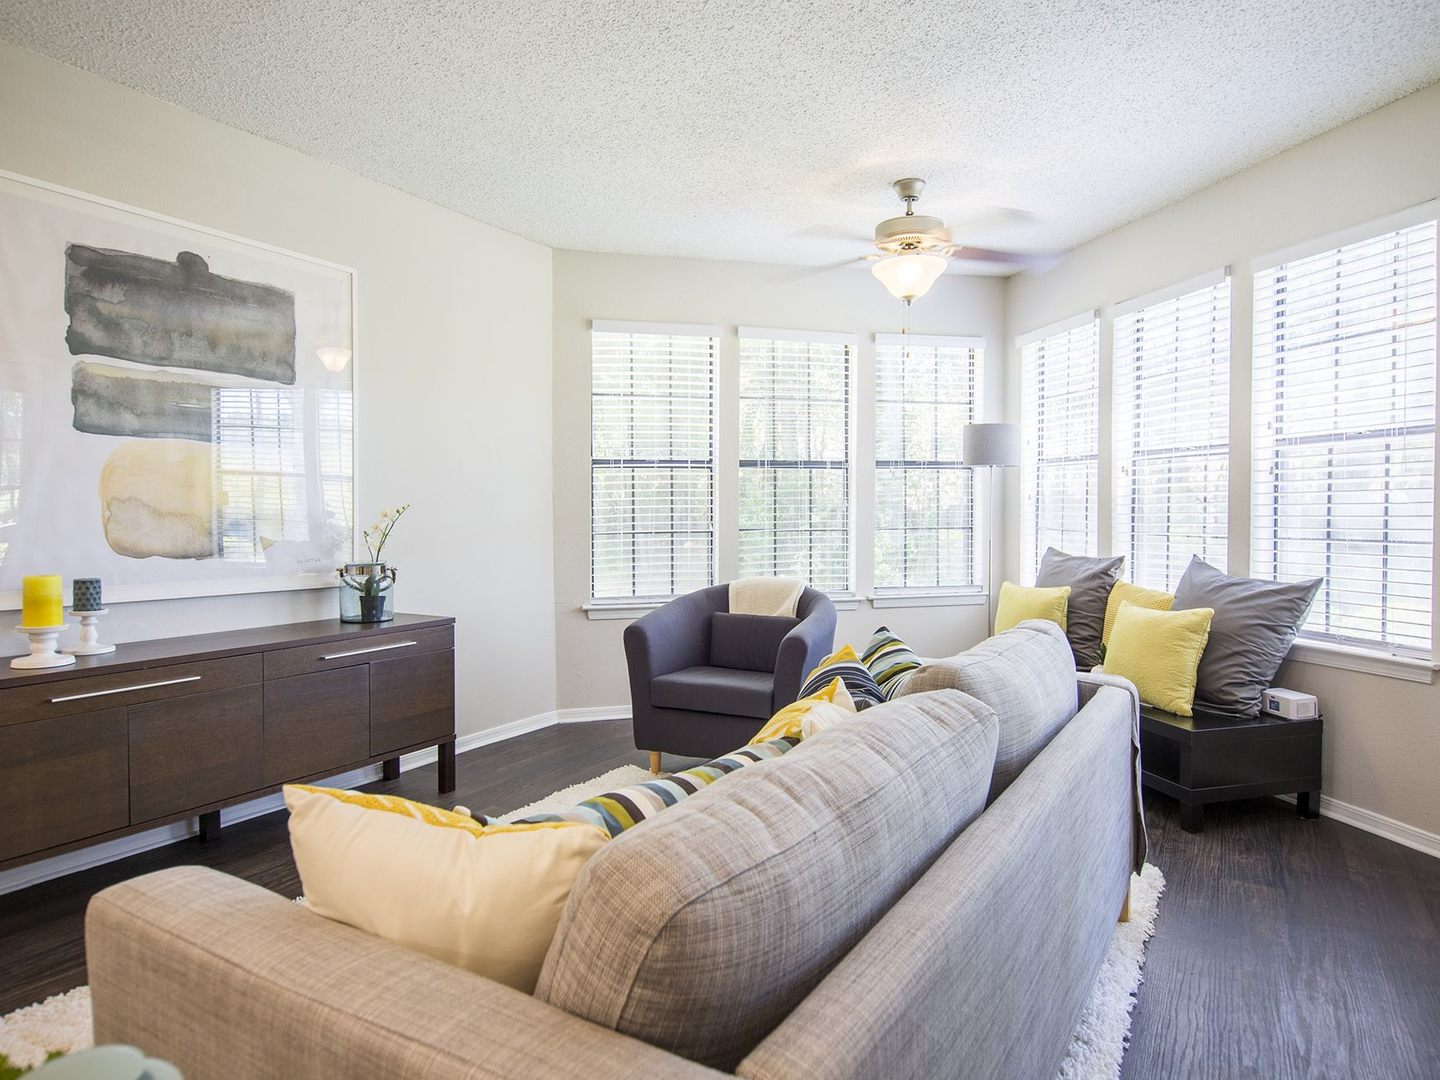 Living room with bright natural lighting, modern furnishings, and a ceiling fan.